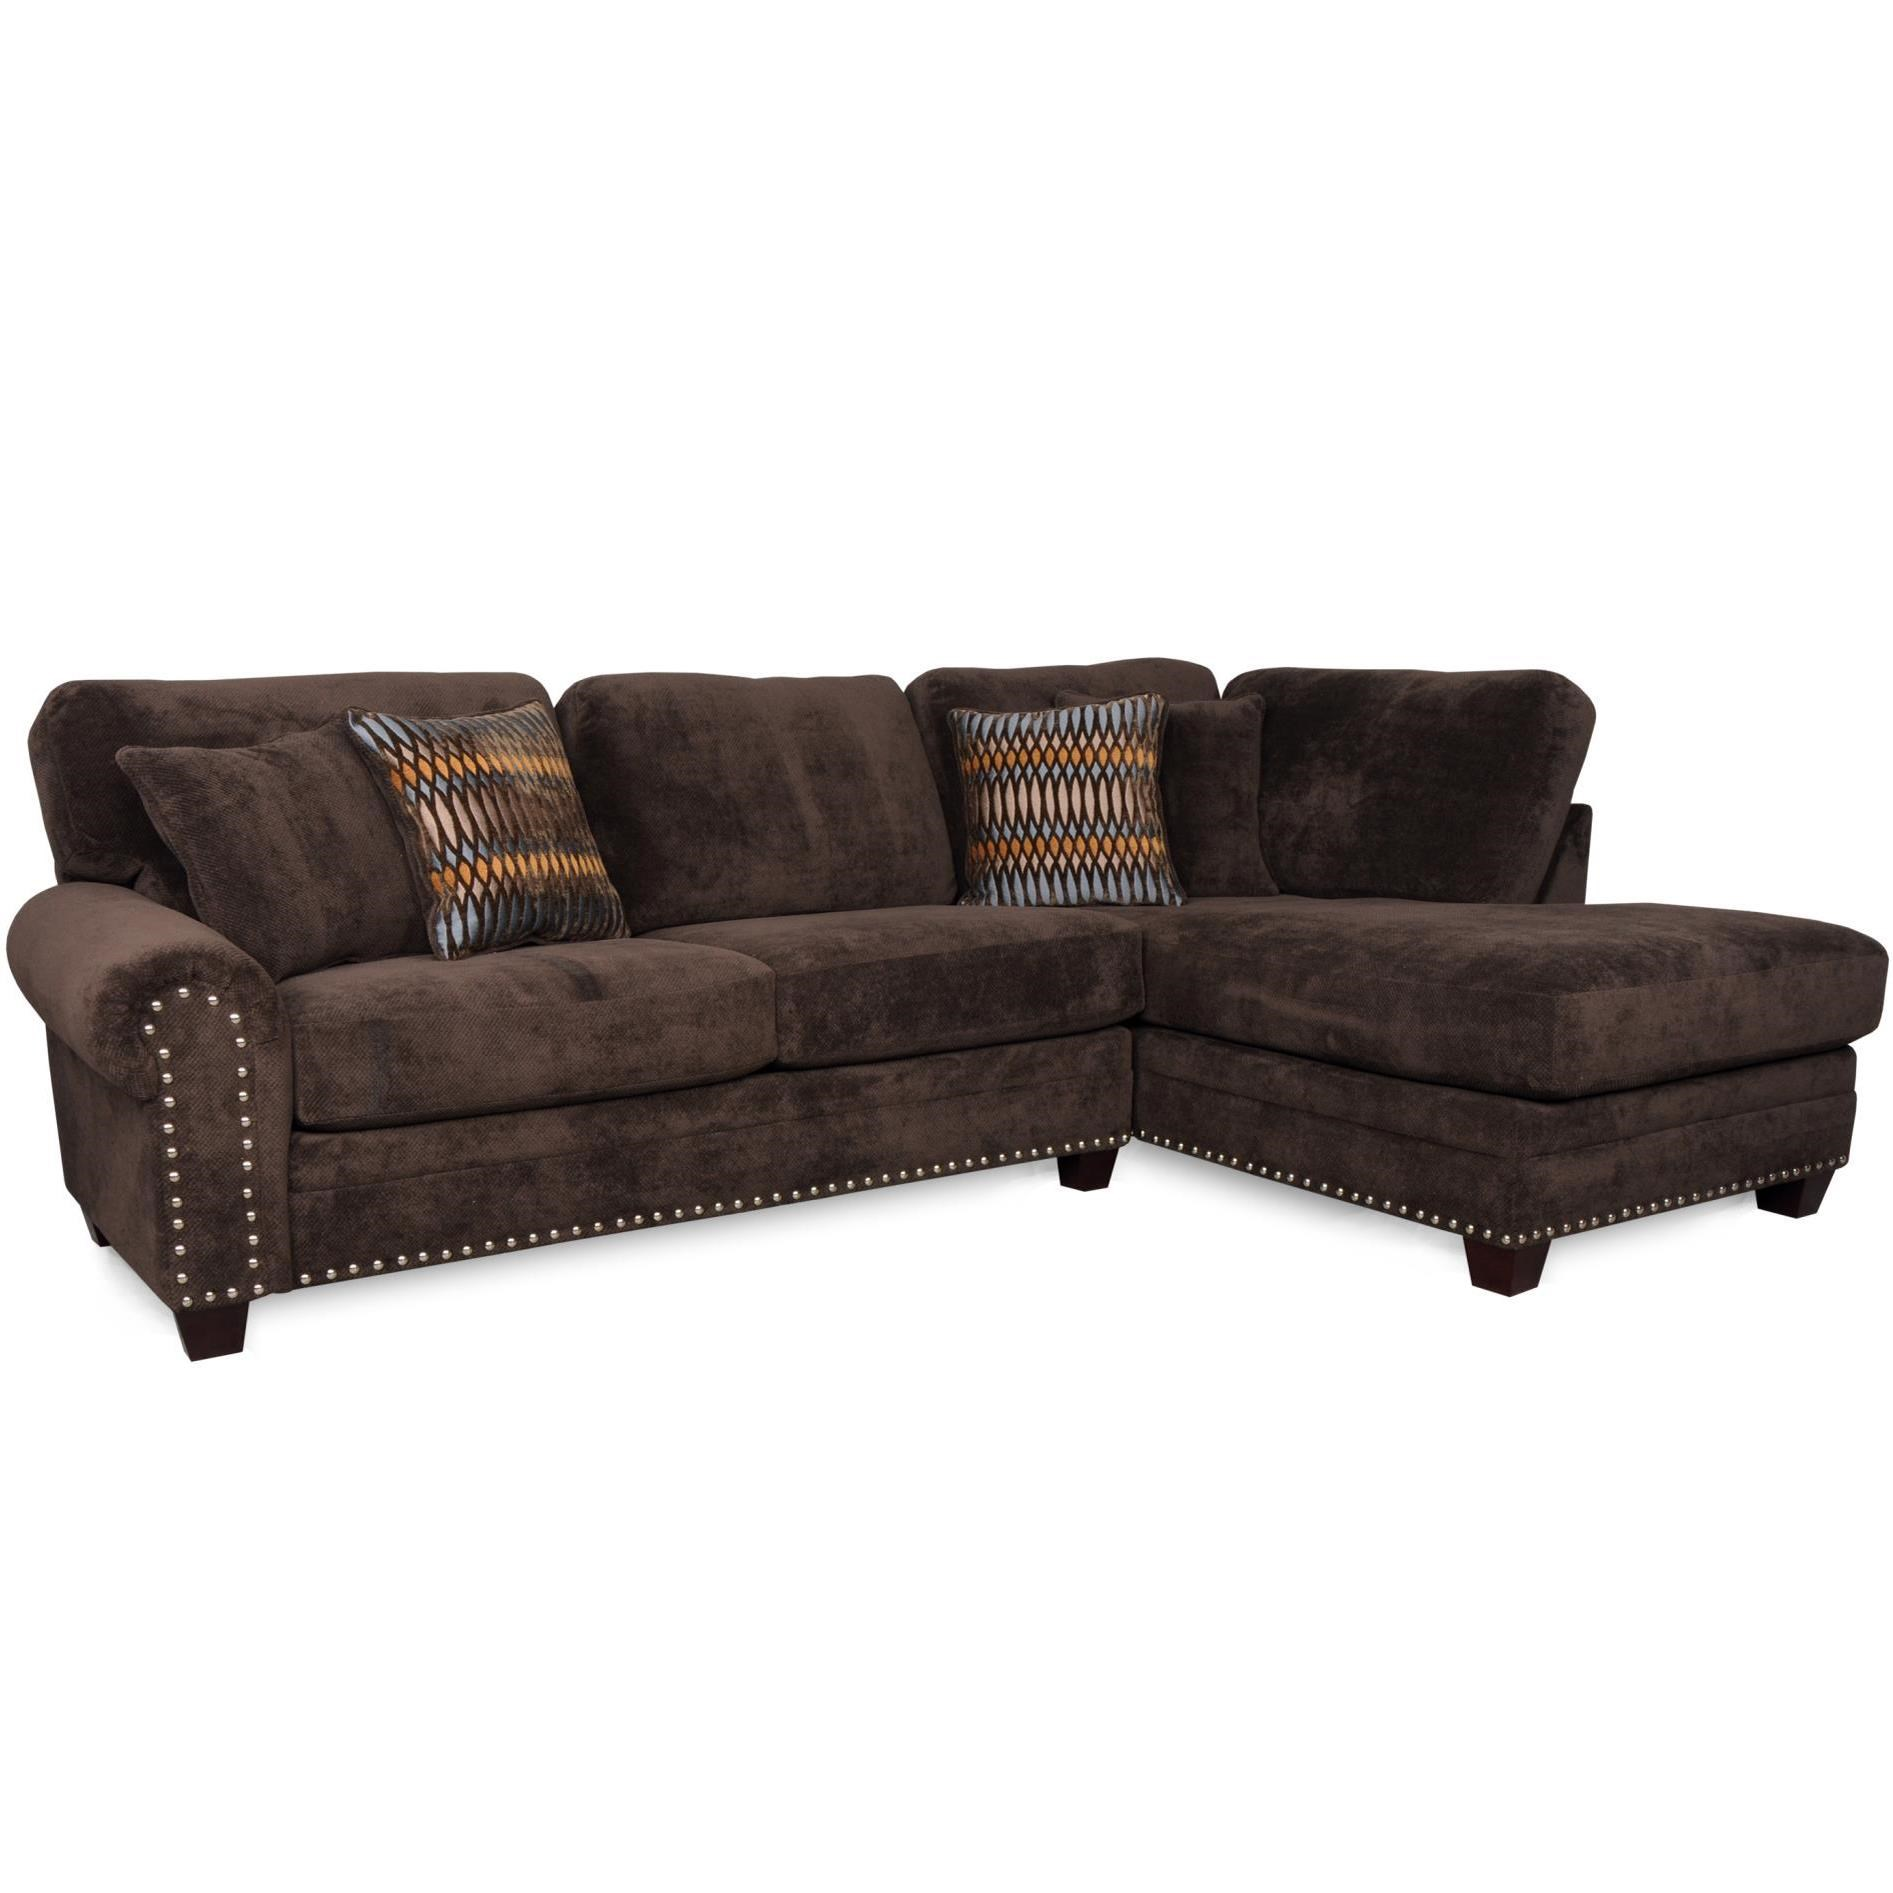 Albany 8648 CollectionCasual Sectional